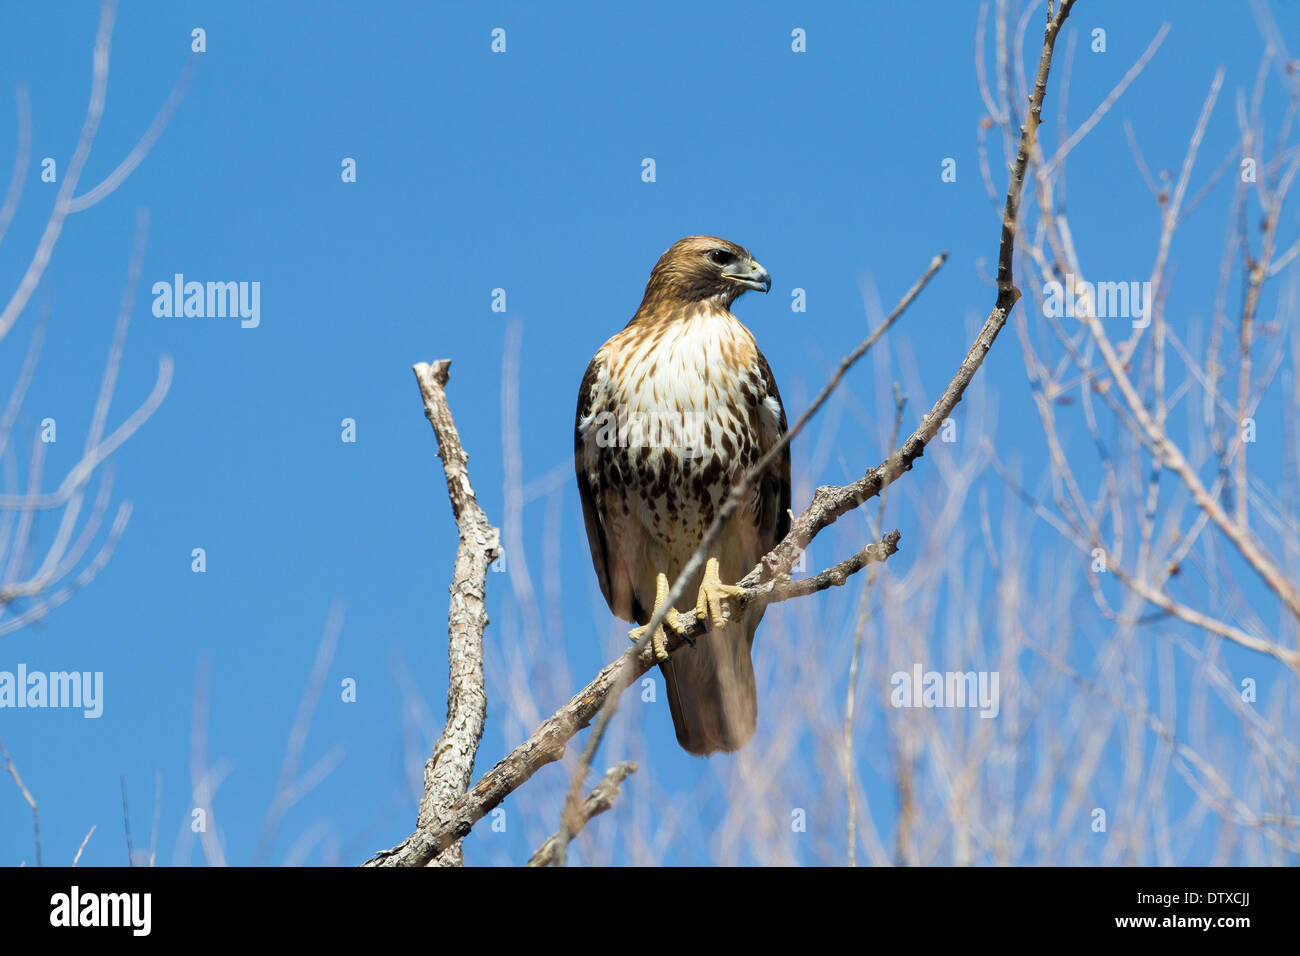 A red-tailed hawk at Bosque del apache, New Mexico - Stock Image